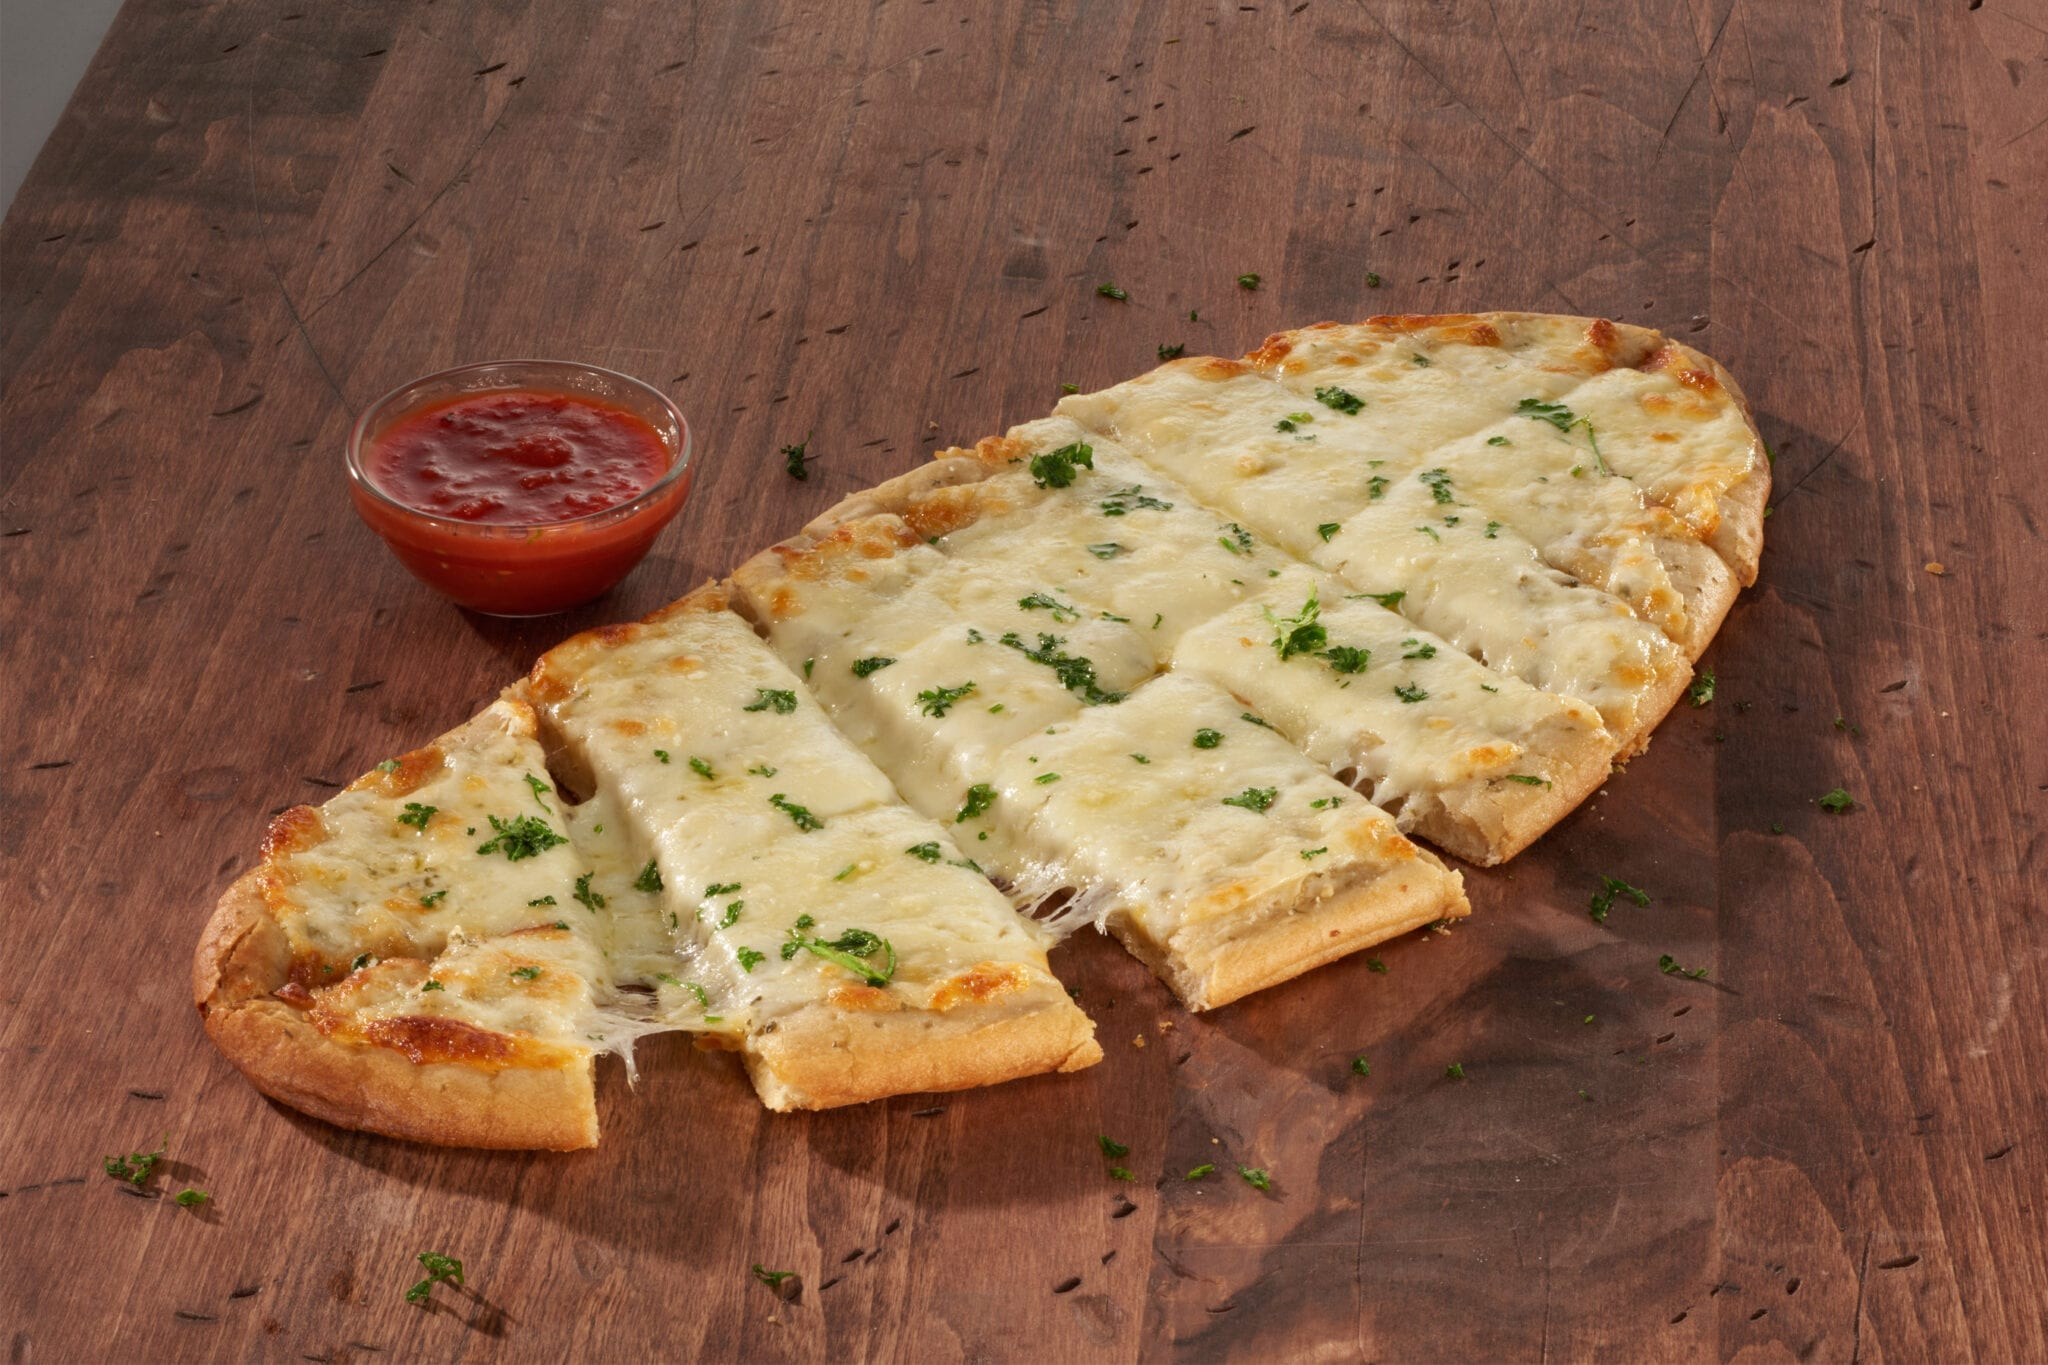 Garlic Cheesy Sticks